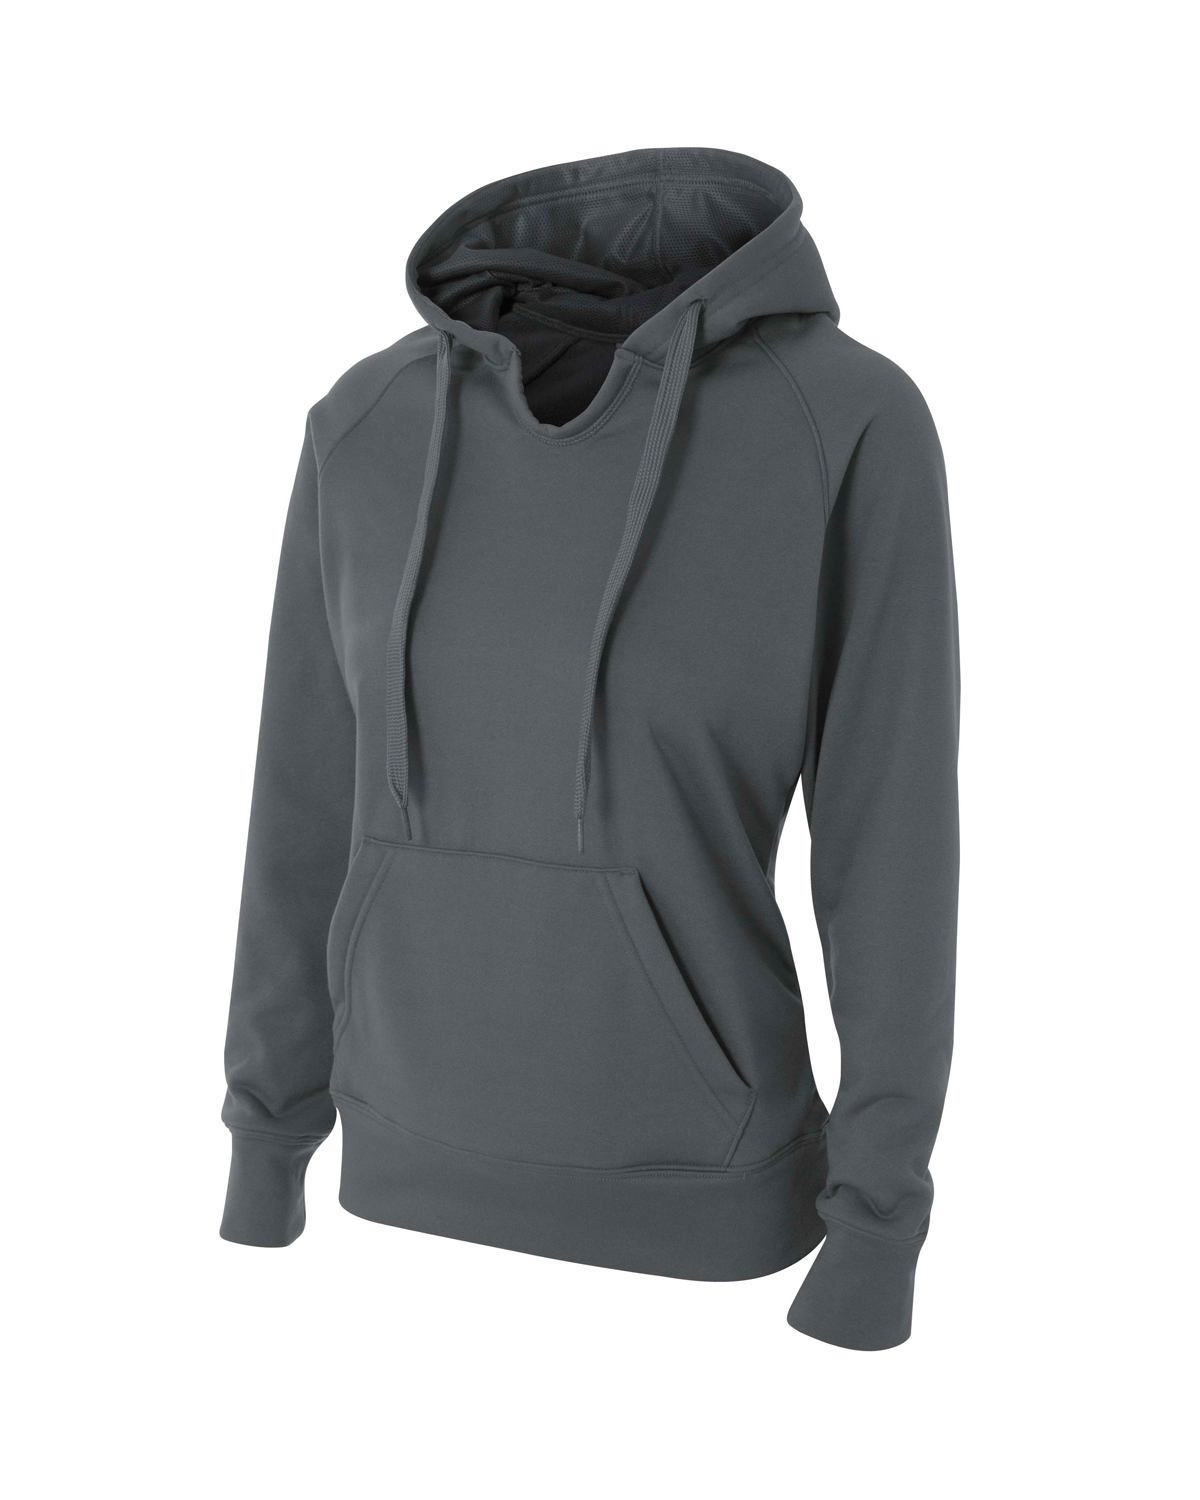 A4 Drop Ship NW4245 - Ladies' Tech Fleece Hoodie